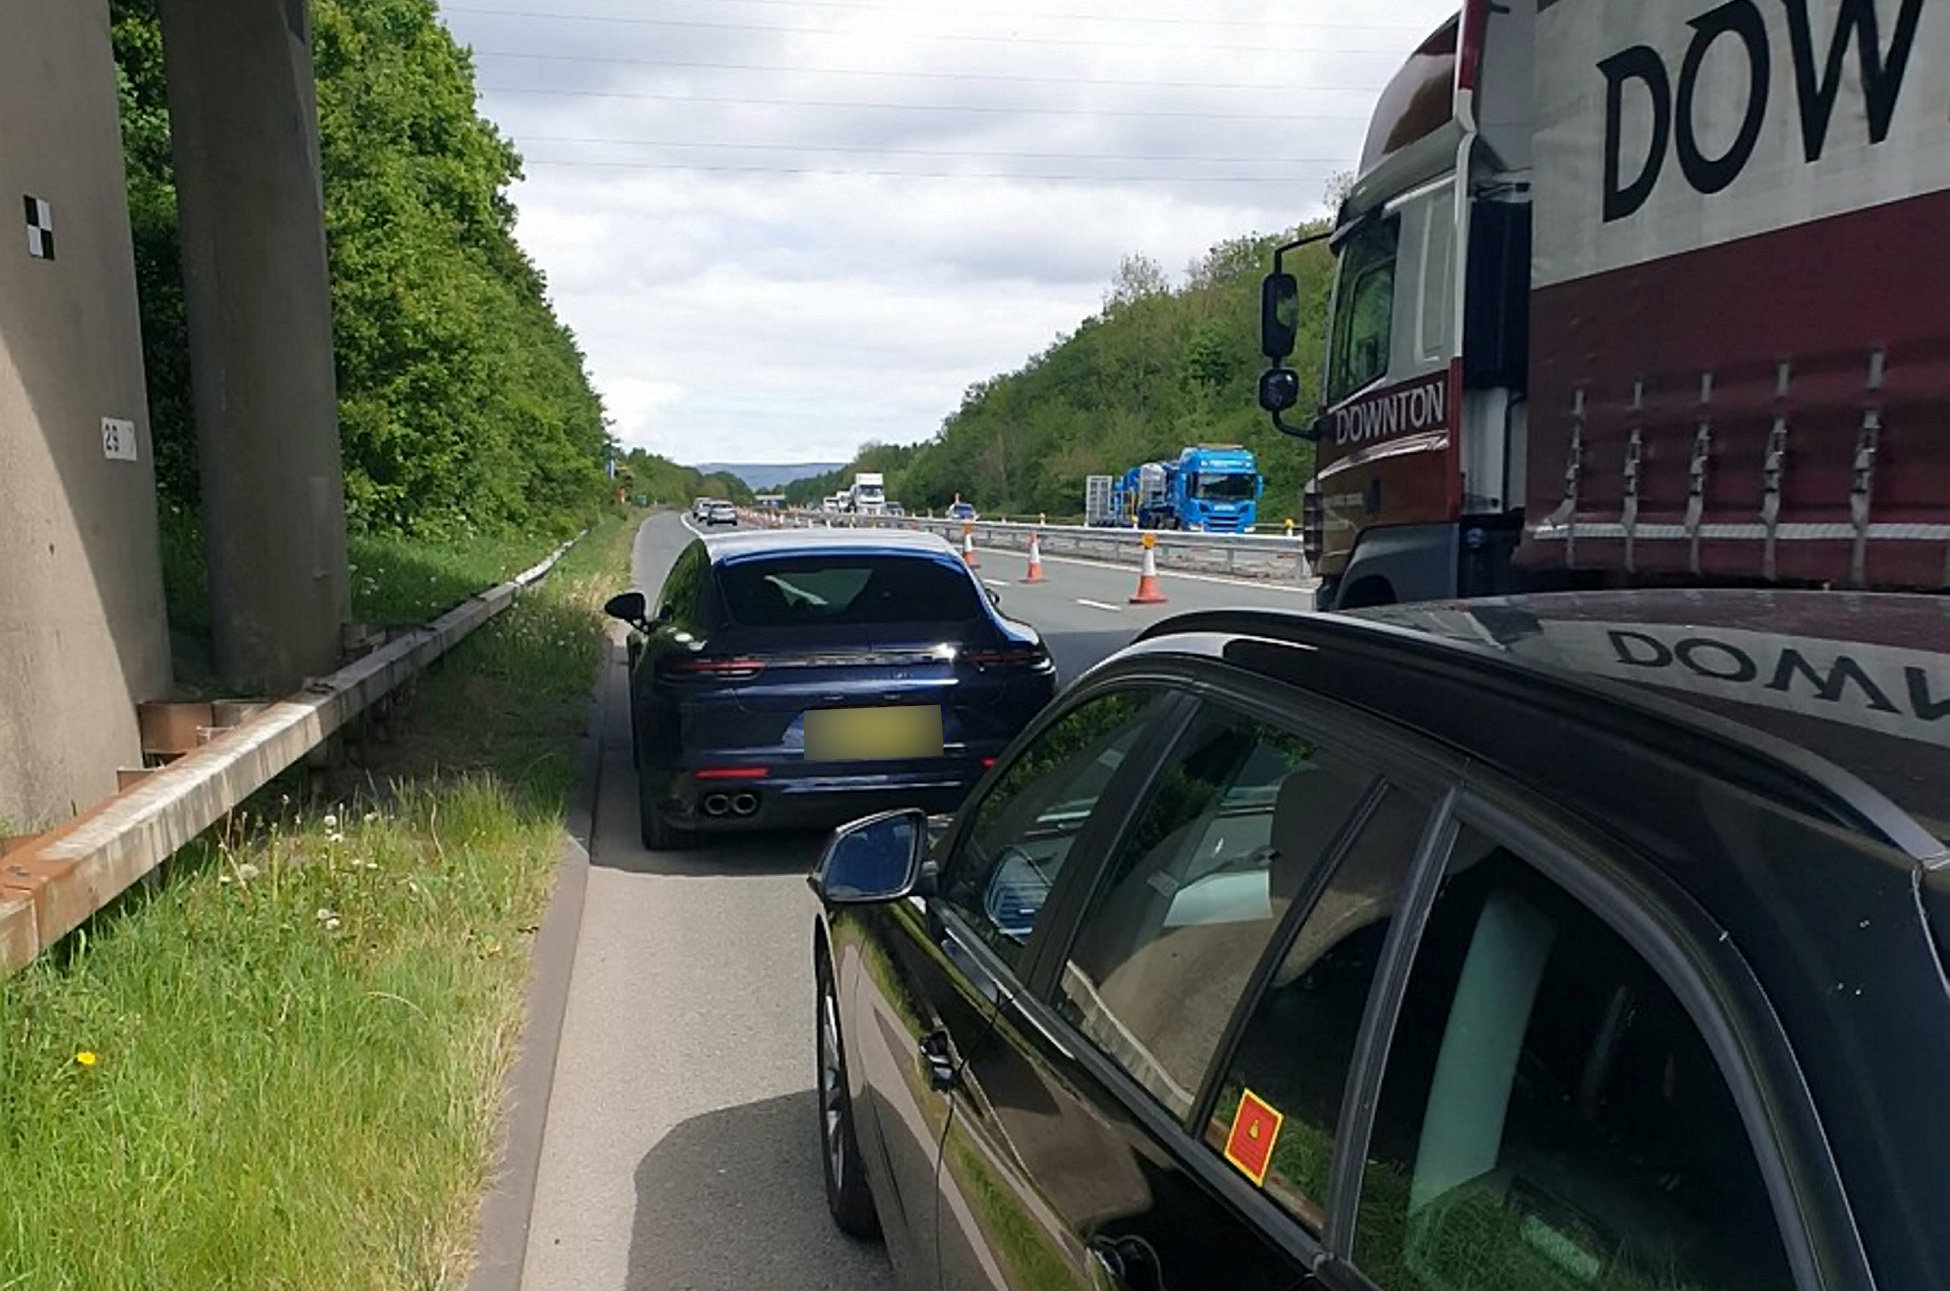 """A """"disgraceful"""" Porsche driver was caught speeding past a police car at 144mph - almost triple the speed limit.  See SWLEporsche.  The motorist, who hasn't been named, was clocked while driving through 50mph zone roadworks on the M65 on Monday (May 11).  The officer followed the driver for nine miles between Blackburn and Burnley, Lancs.  Posting on Twitter, the road cop said: """"The driver of this Porsche overtook my police car on the M65 at 125mph. """"Speeds reached 144mph as he entered the 50mph roadworks section. Disgraceful speed.  """"He has been reported and his day in court awaits. The roads aren't a race track no matter what you drive."""""""